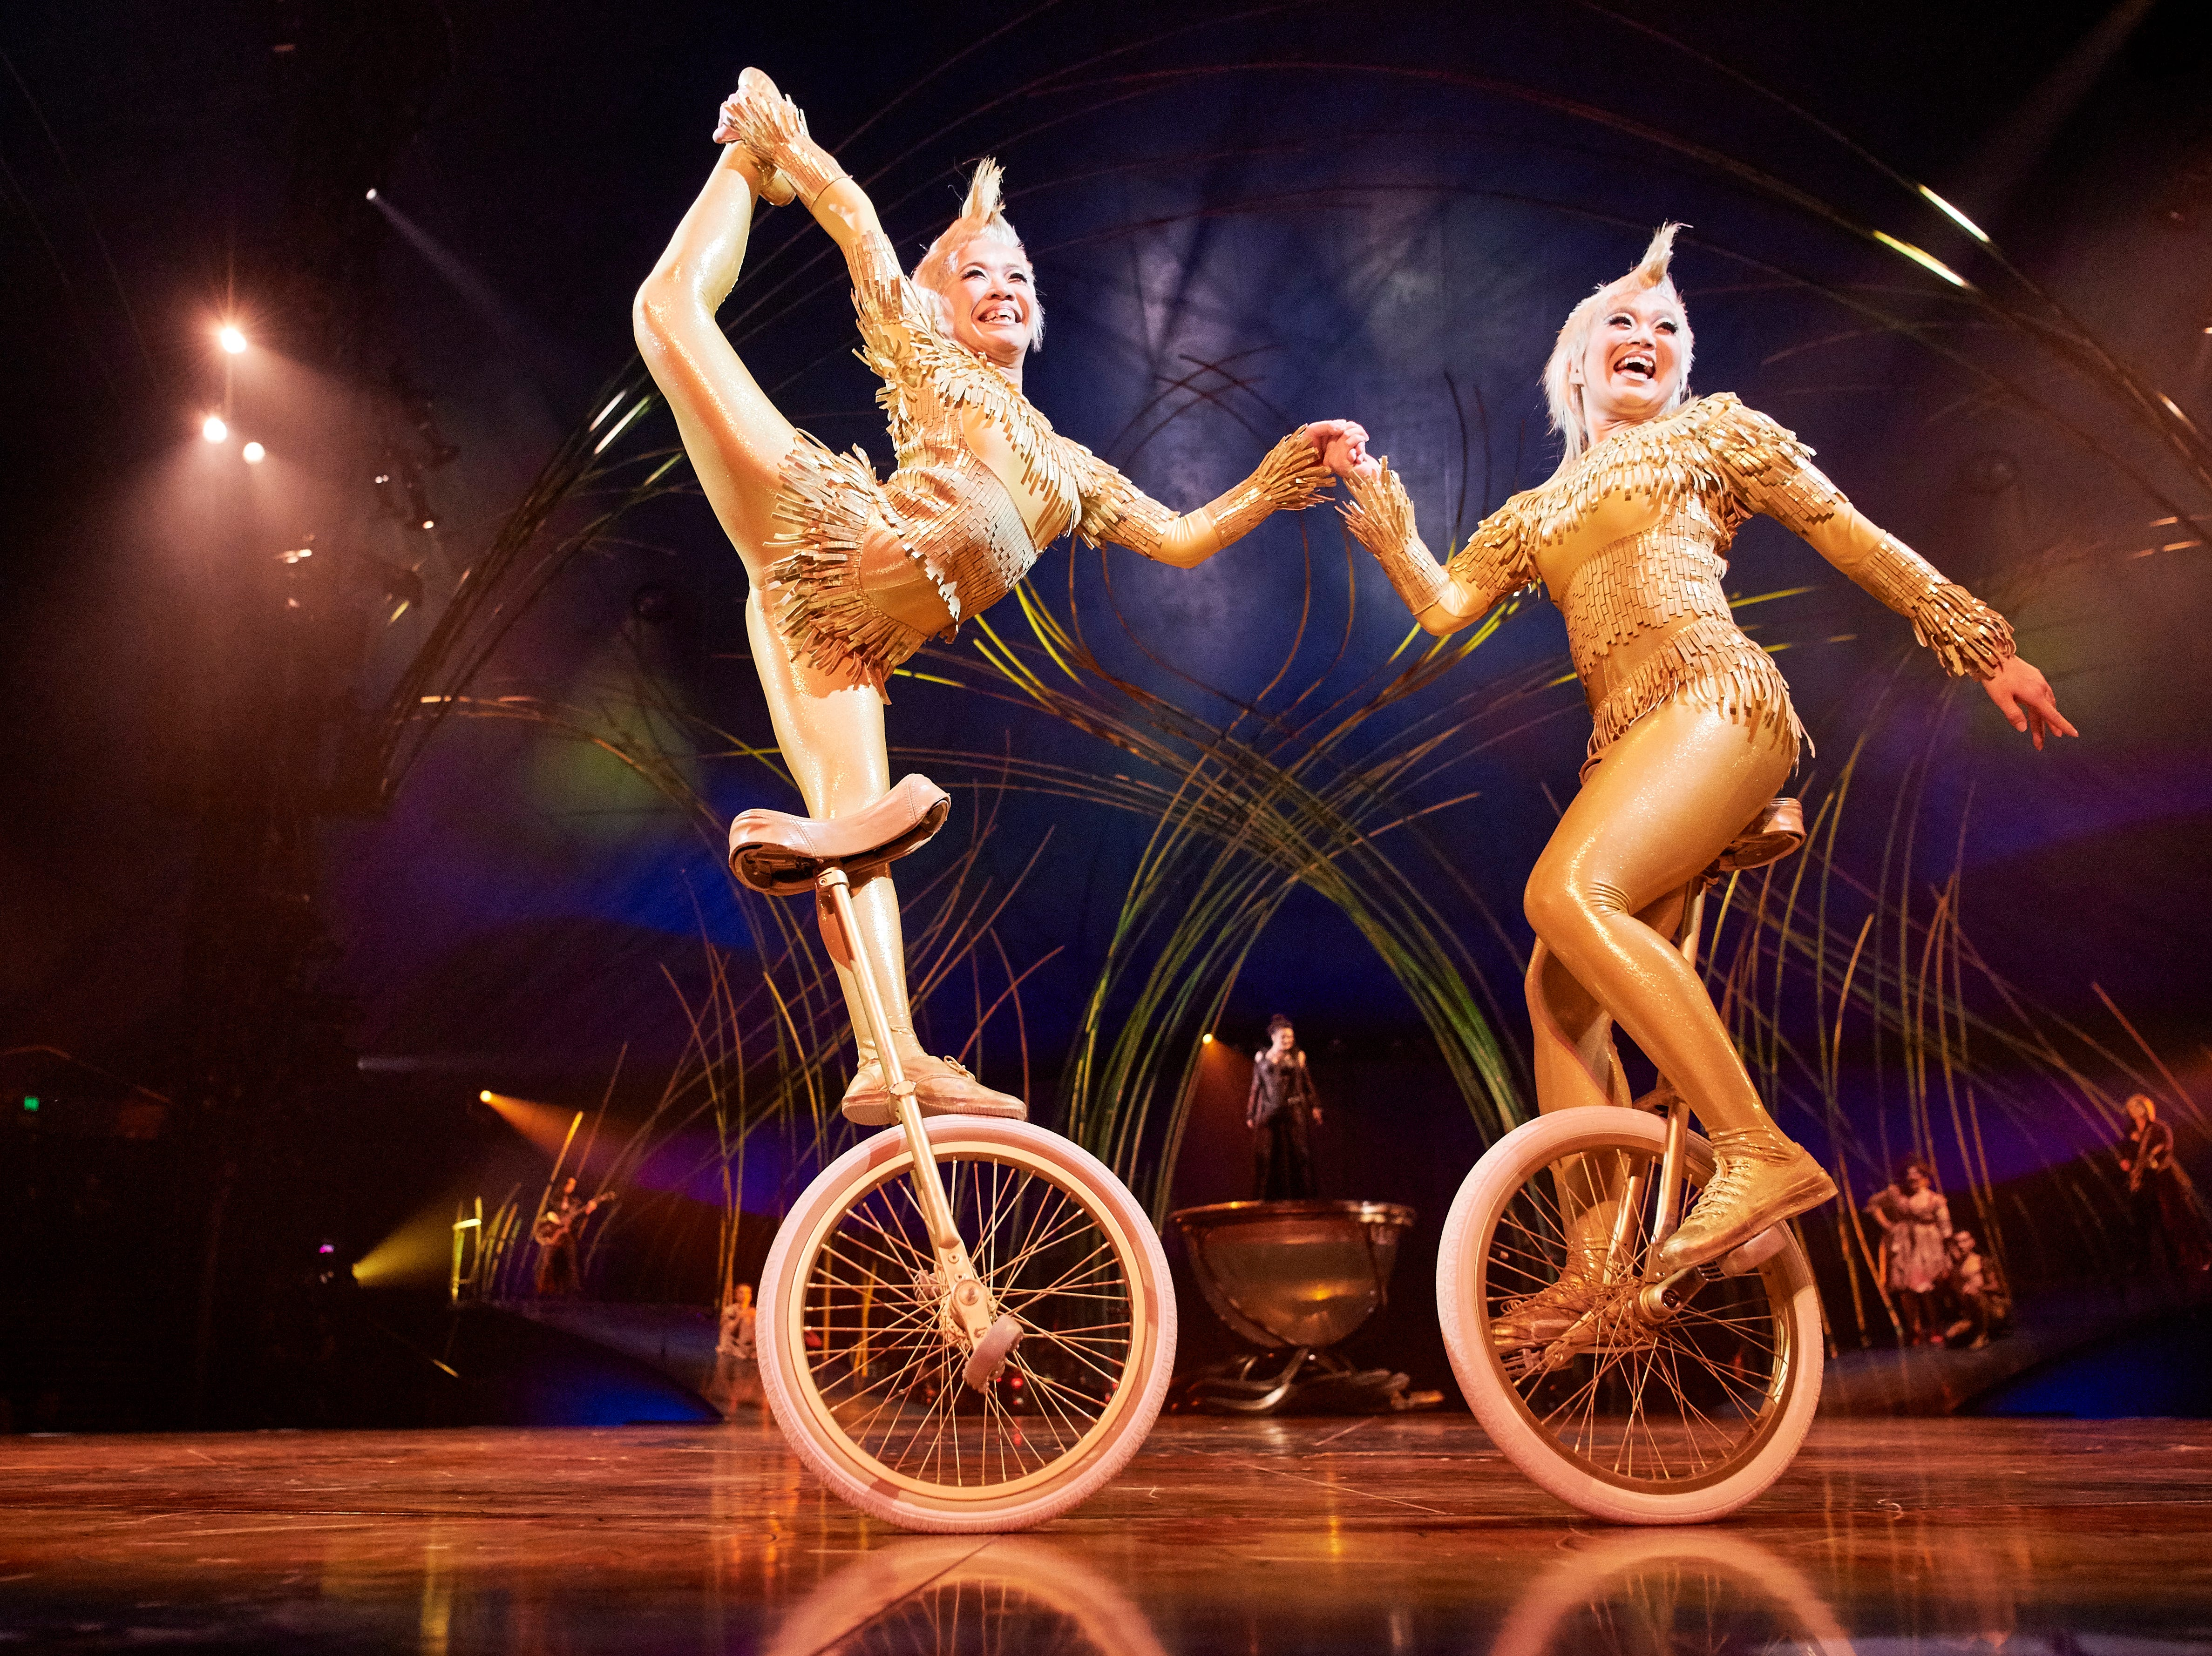 Two artists enter on unicycles wearing hoop skirts of gold, weaving in and out of each other's paths like the wind as they joyfully pirouette, dance and thrill the pageant participants.